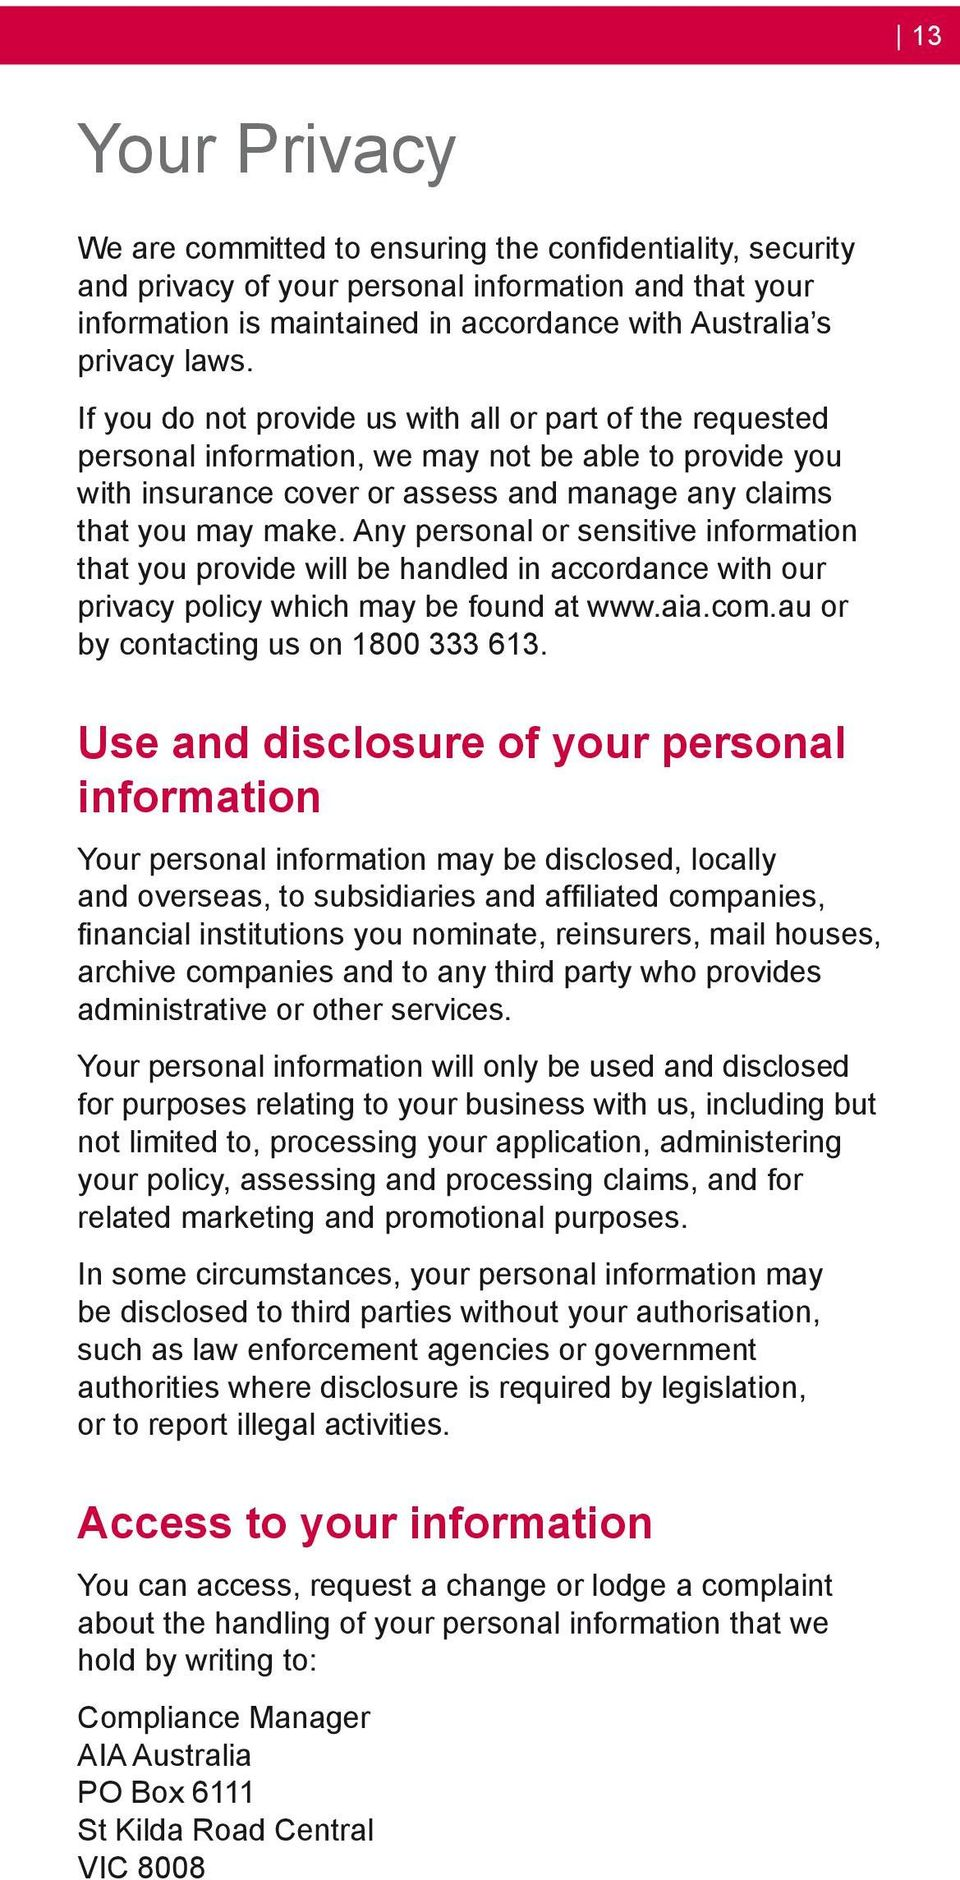 Any personal or sensitive information that you provide will be handled in accordance with our privacy policy which may be found at www.aia.com.au or by contacting us on 1800 333 613.